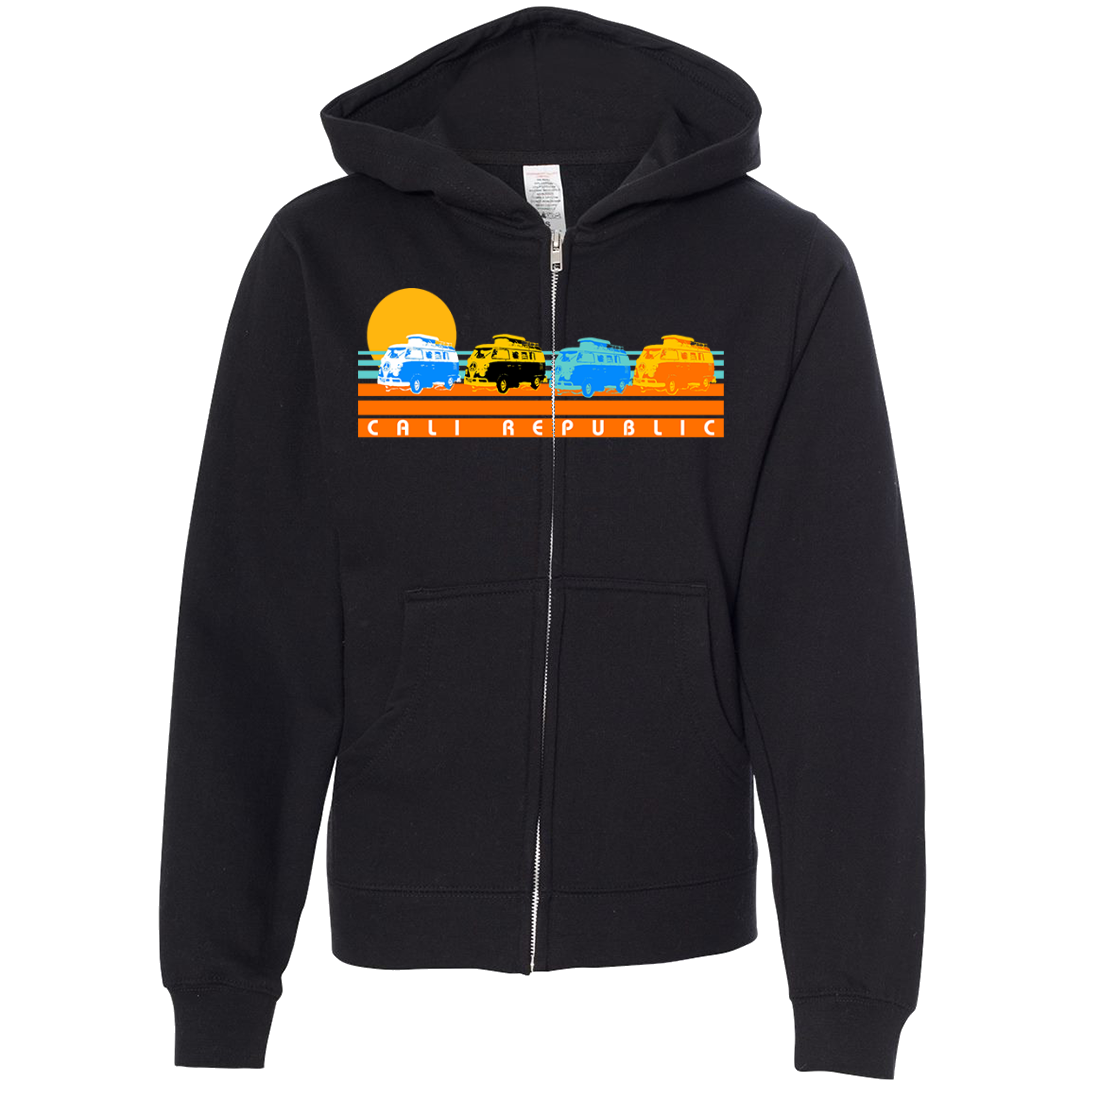 Cali Republic Vintage Van Sunset Premium Youth Zip-Up Hoodie